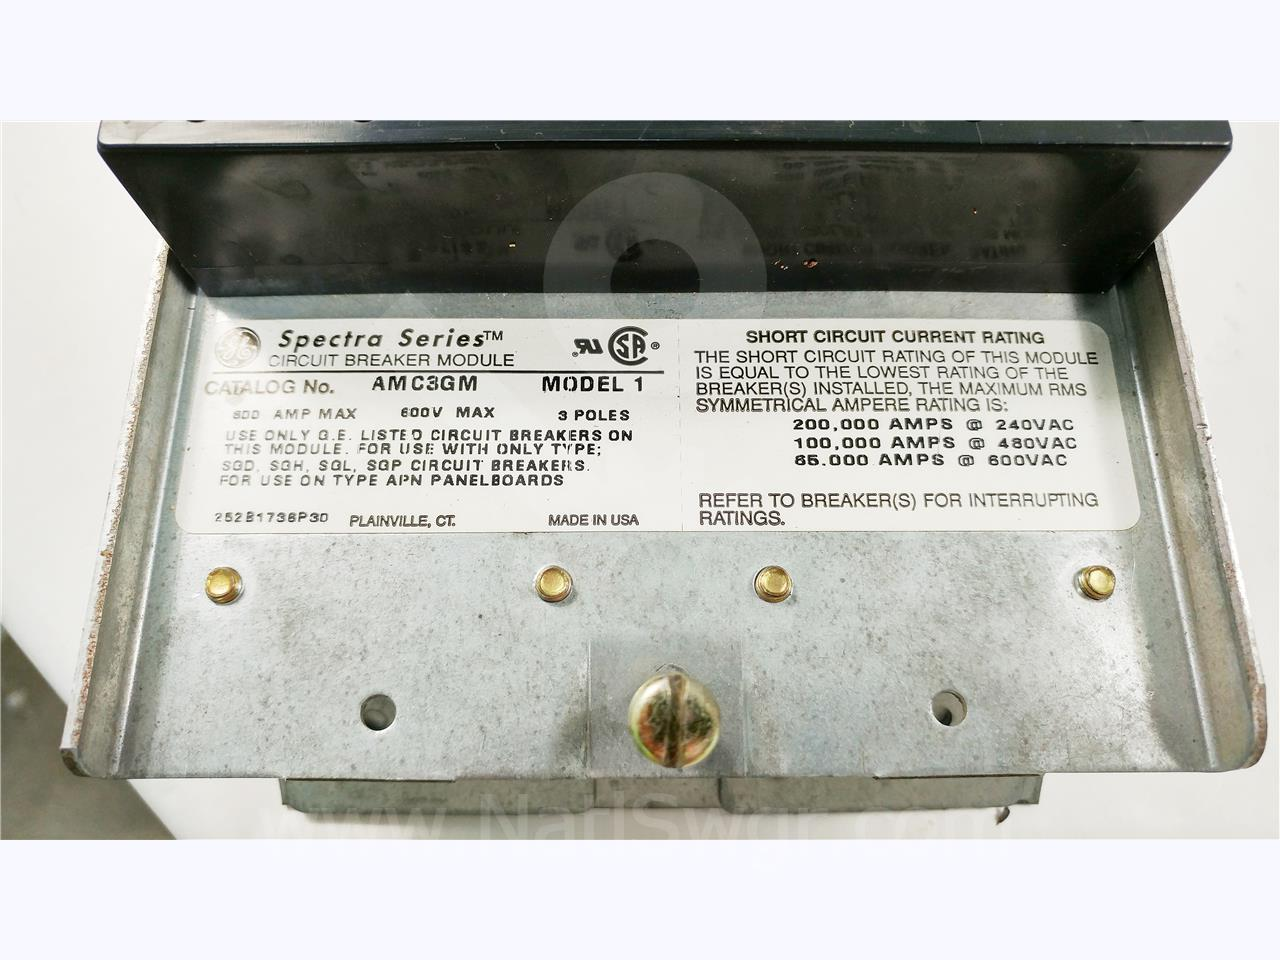 General Electric Ge Spectra Series Circuit Breaker Module 3 Phase Amps In A